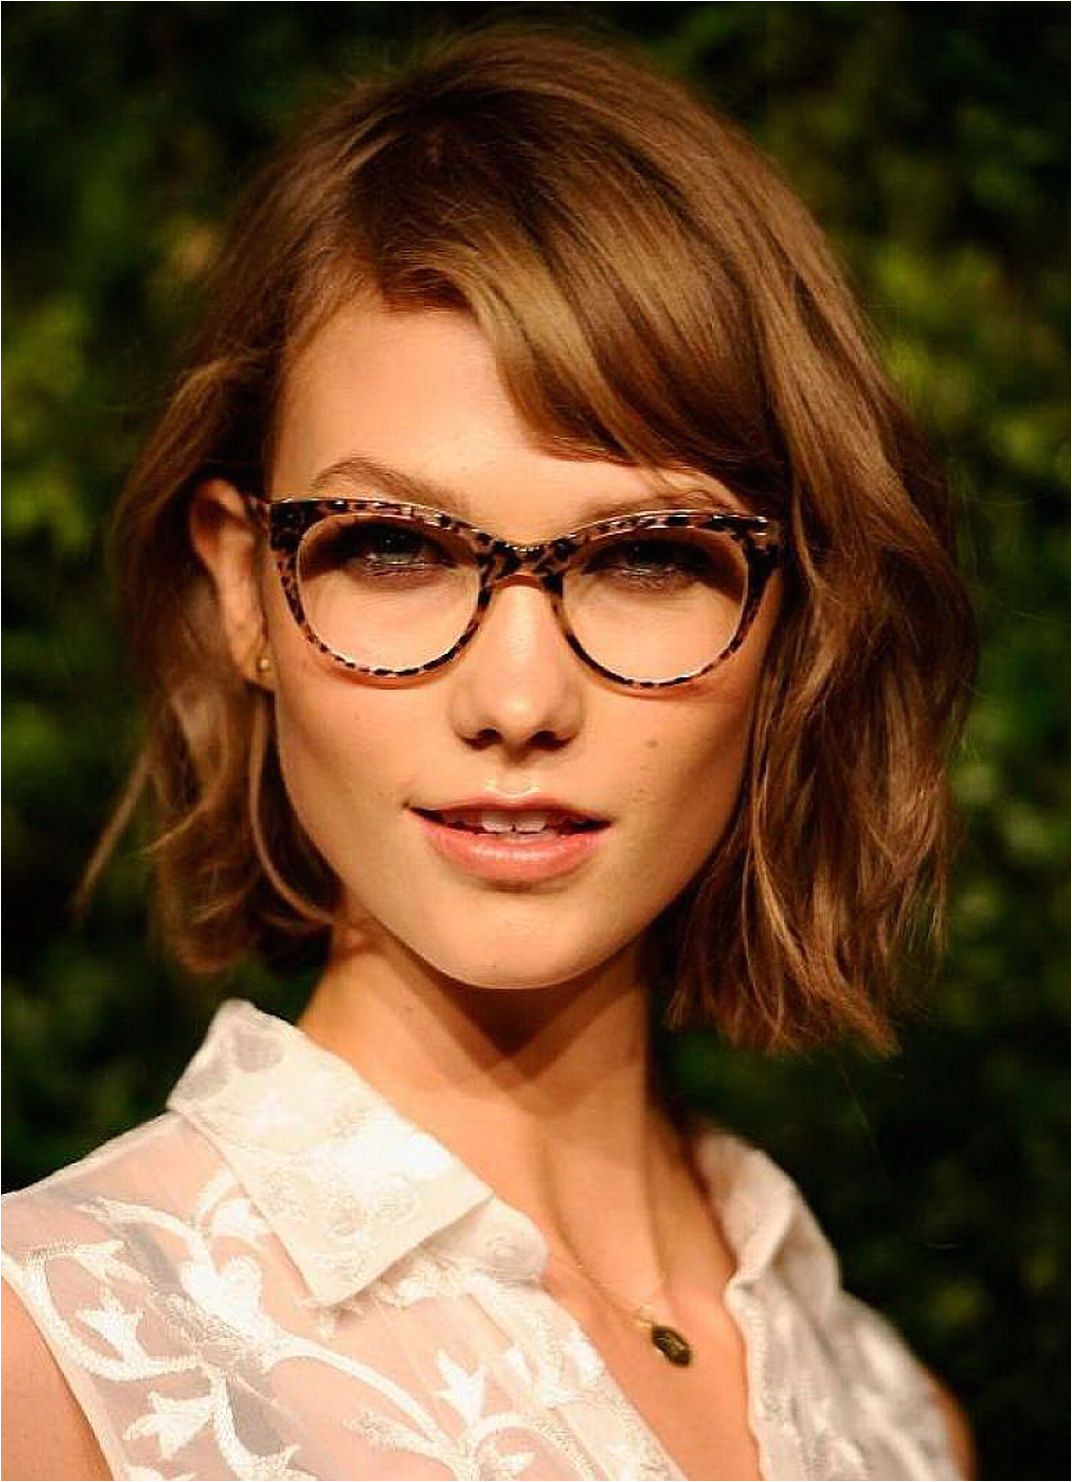 Hairstyles for Bangs and Glasses Best Wavy Short Hair Hairstyles with Side Bangs for Women with